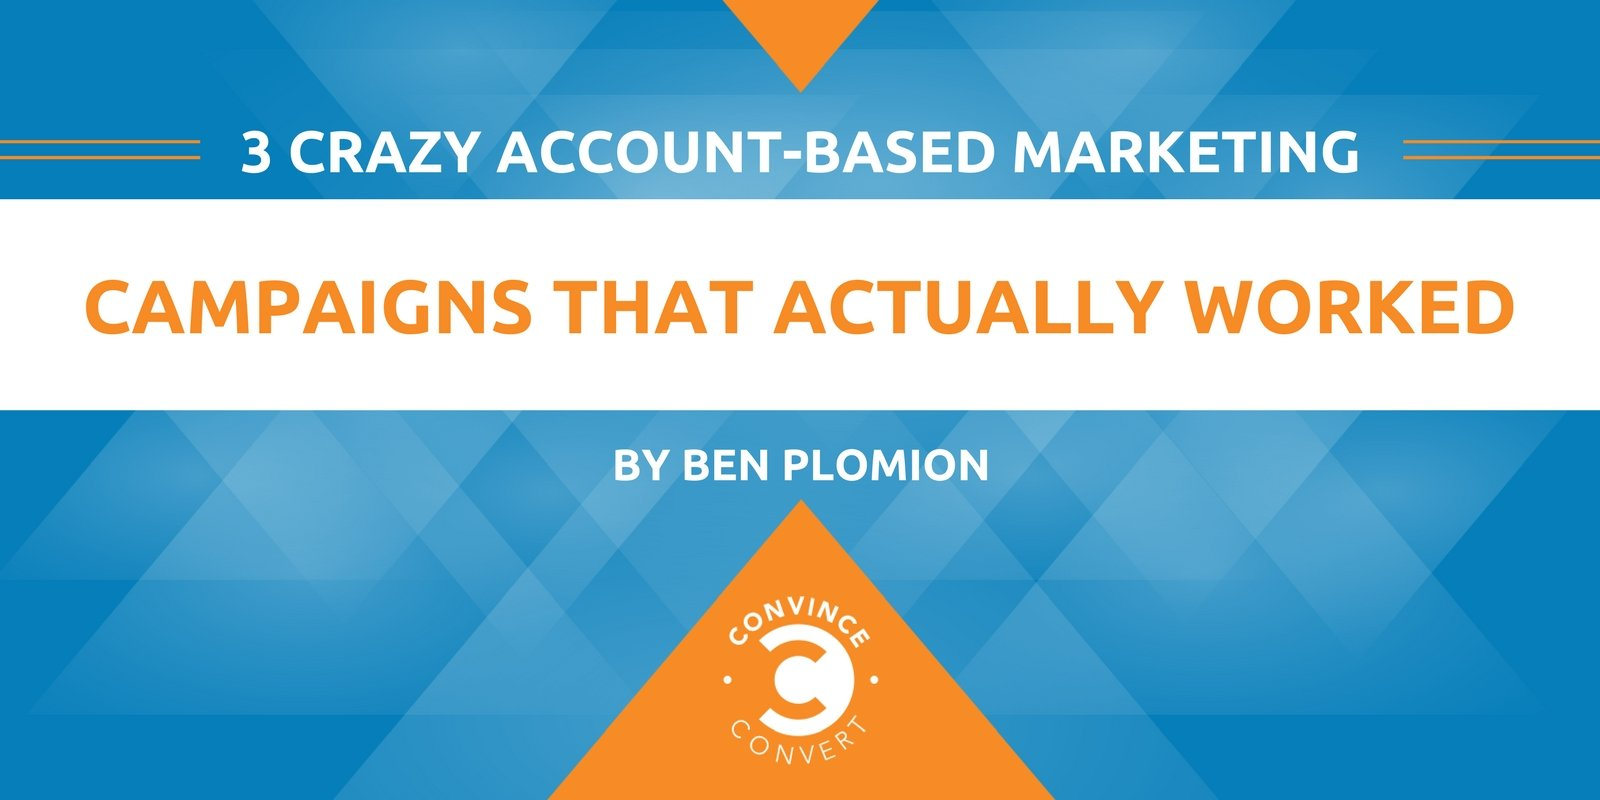 3 Crazy Account-Based Marketing Campaigns That Actually Worked